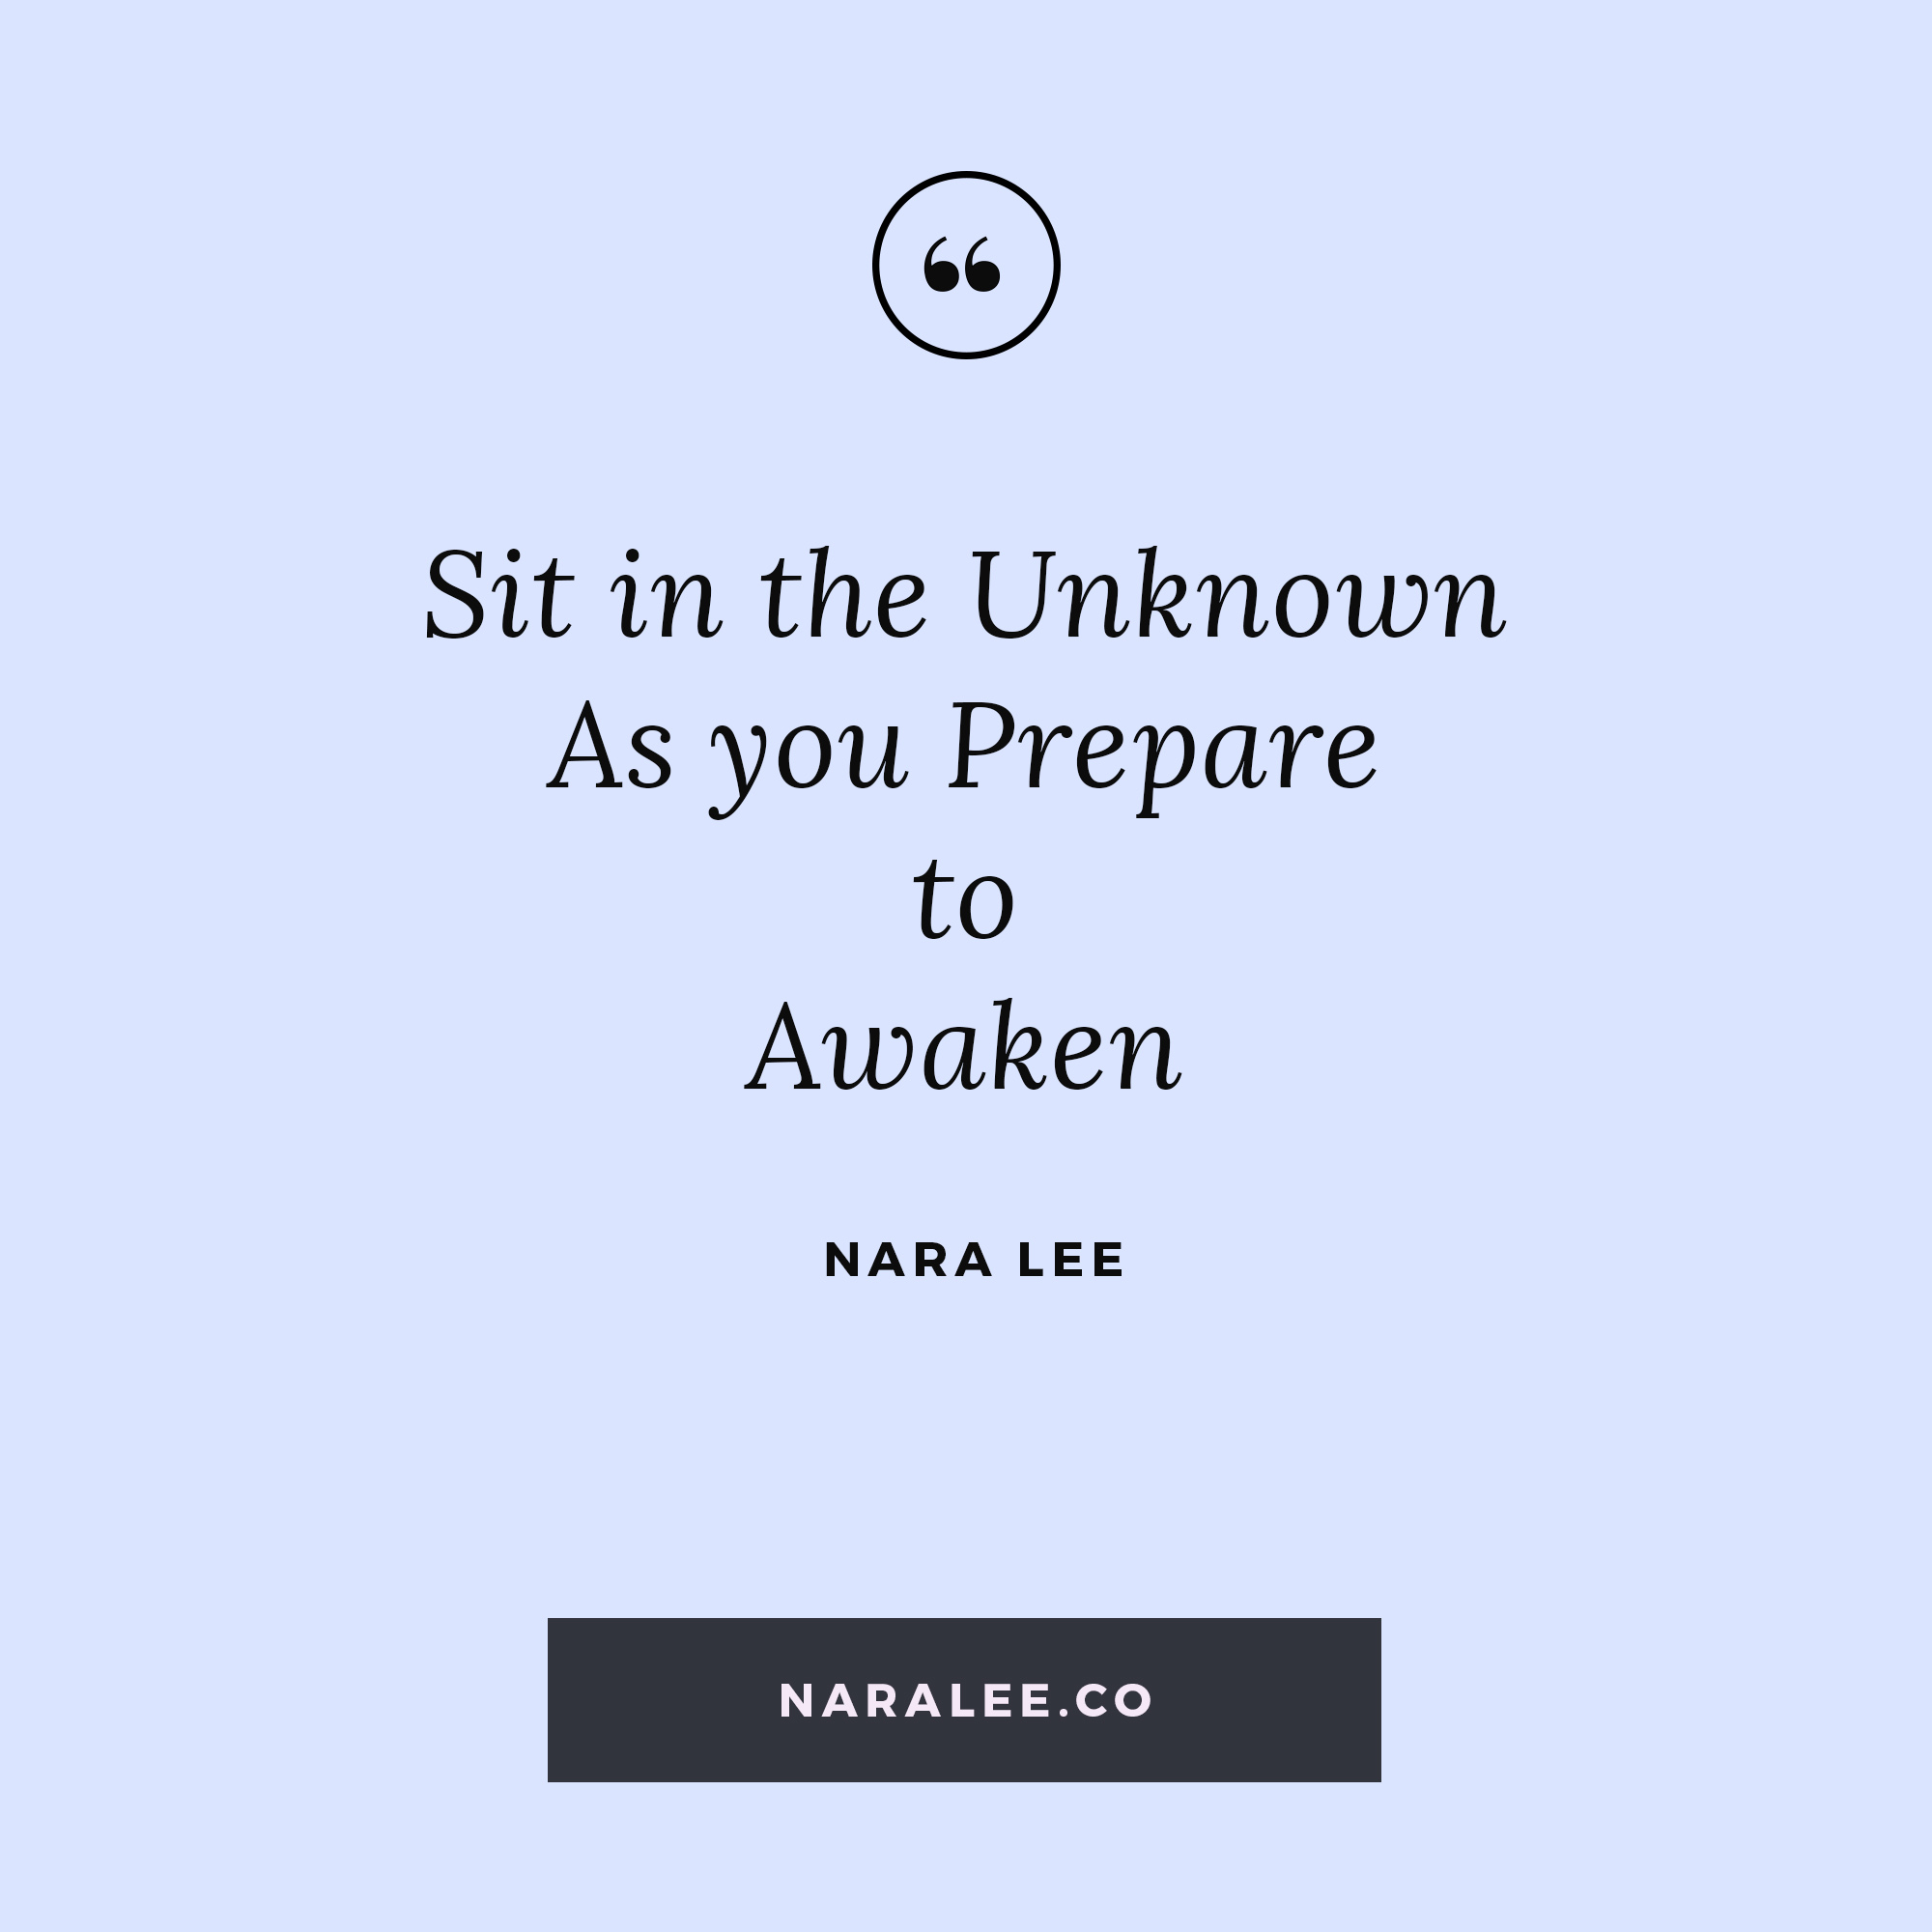 [Living-on-Purpose-Quotes] Nara Lee Quotes -Life Purpose Quotes- Awaken.jpg